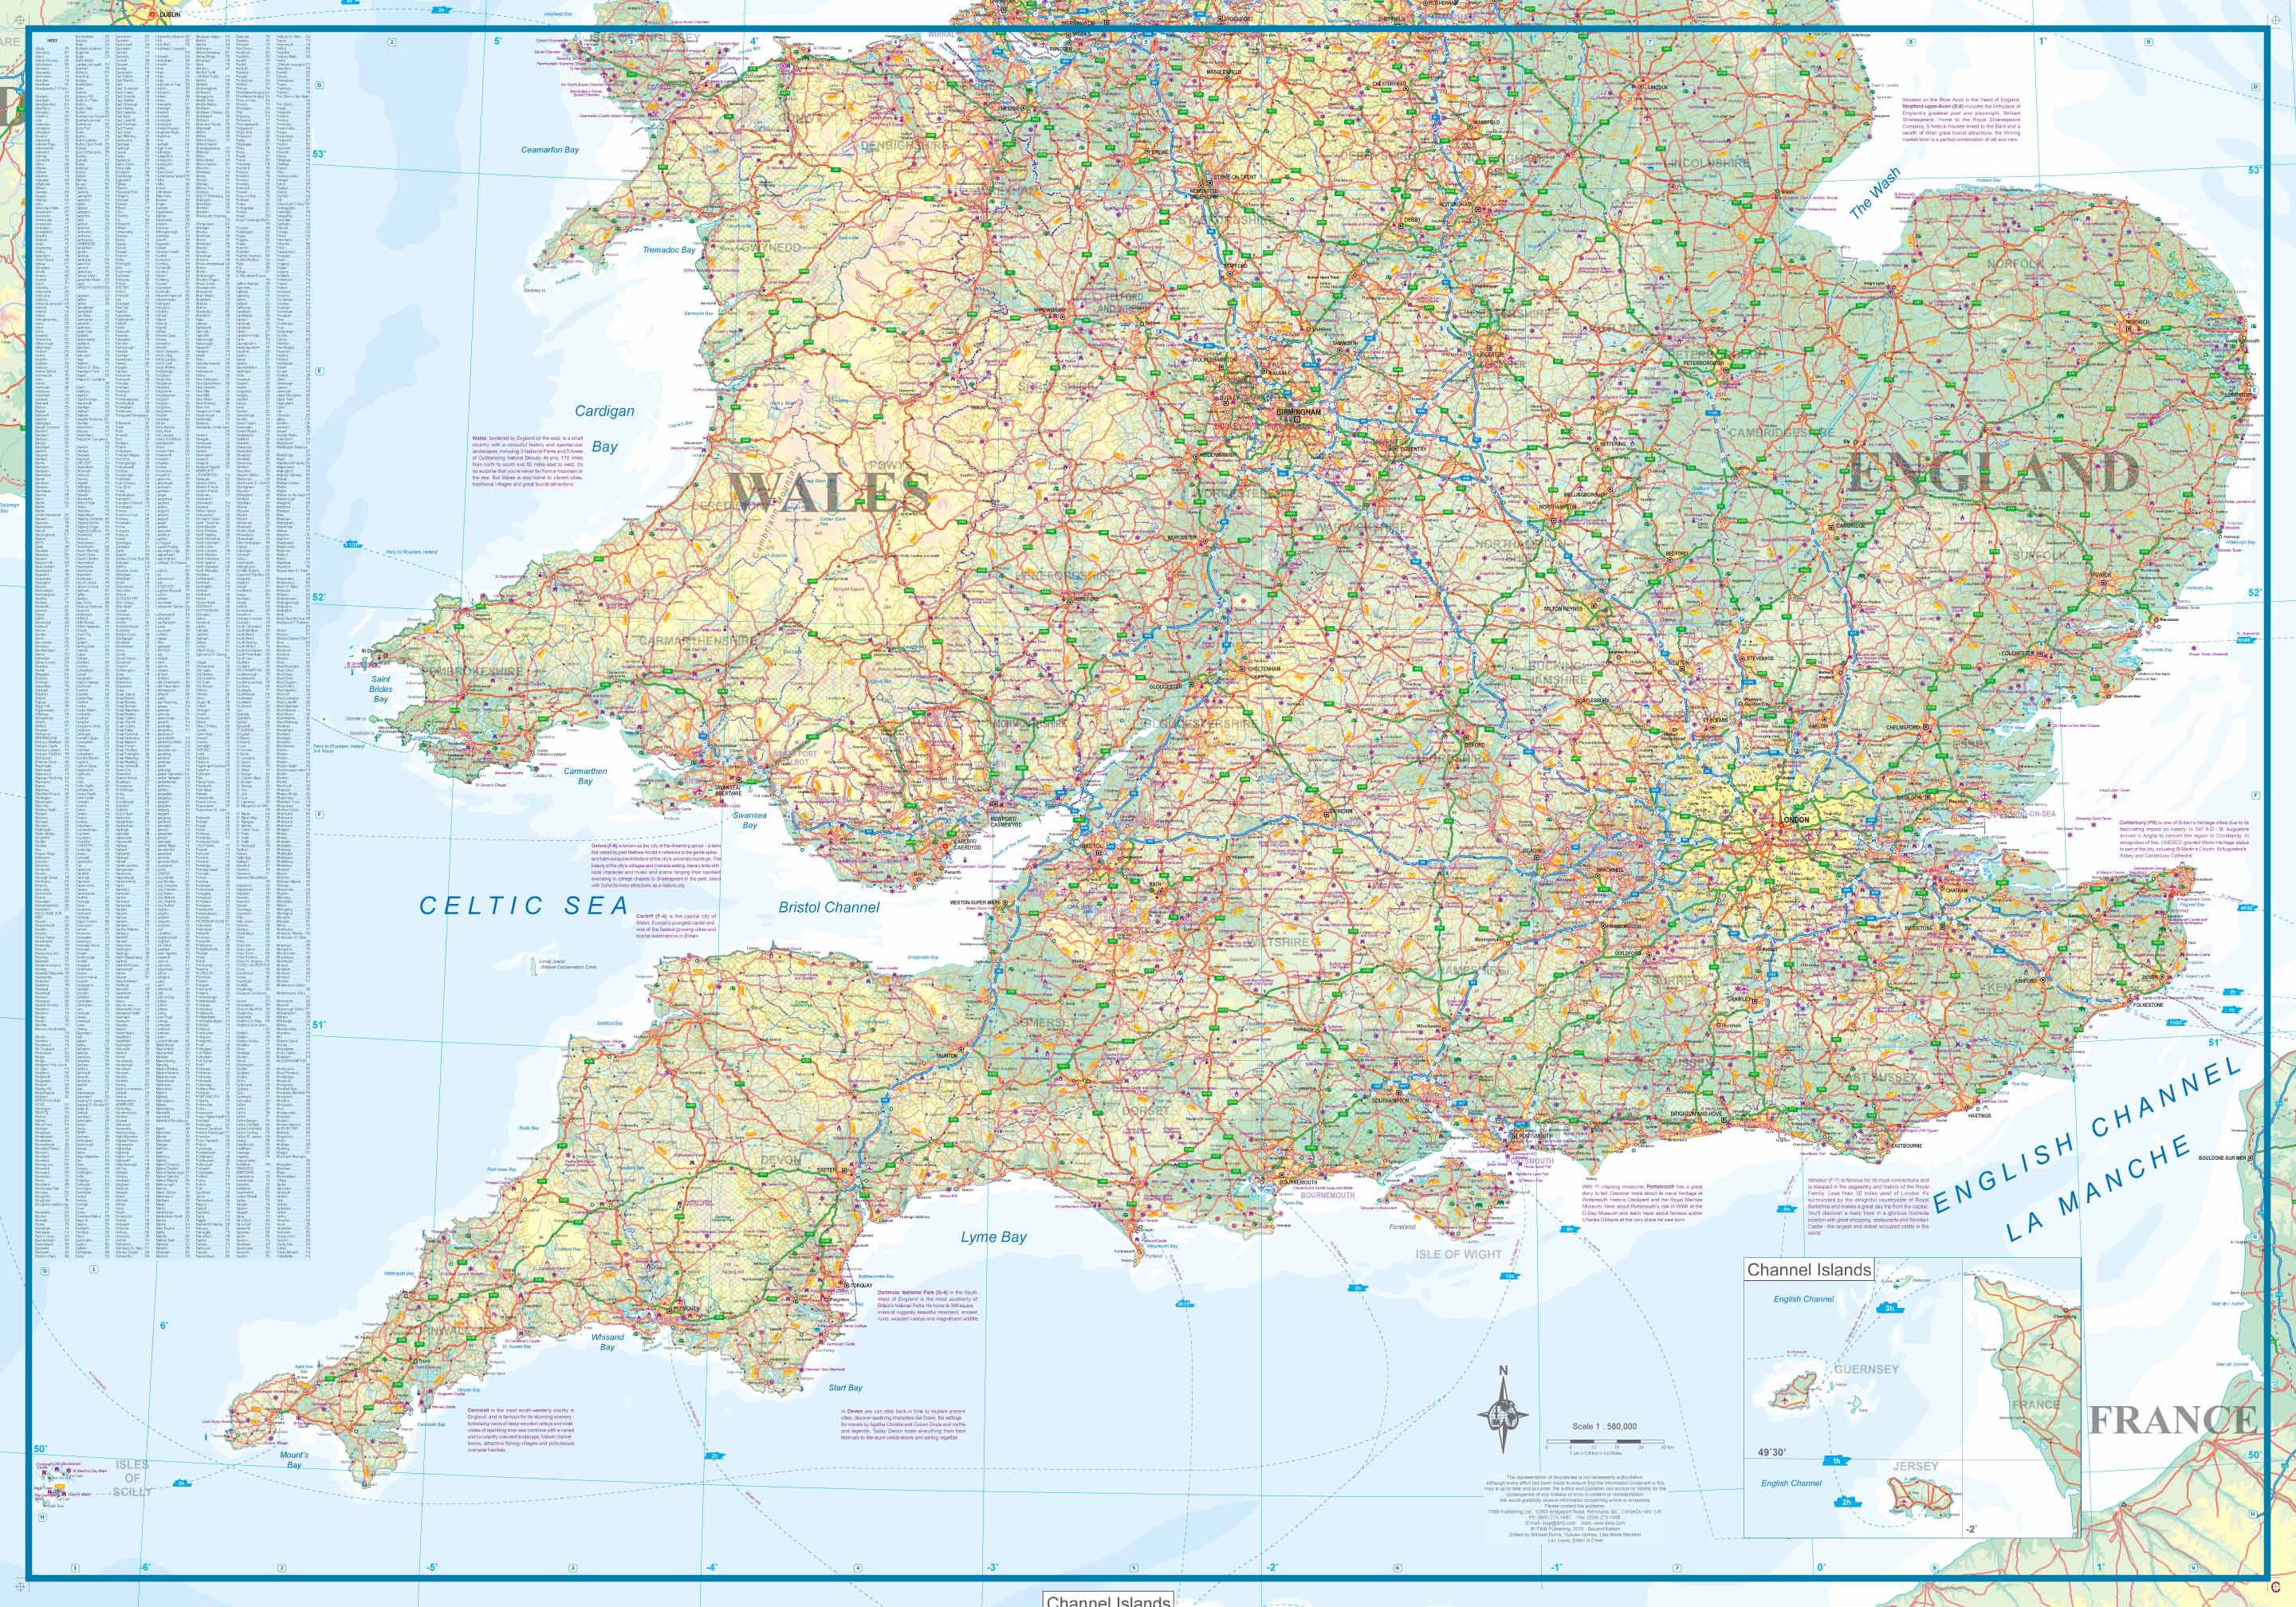 Map Of Southern Ireland Cities.Maps For Travel City Maps Road Maps Guides Globes Topographic Maps